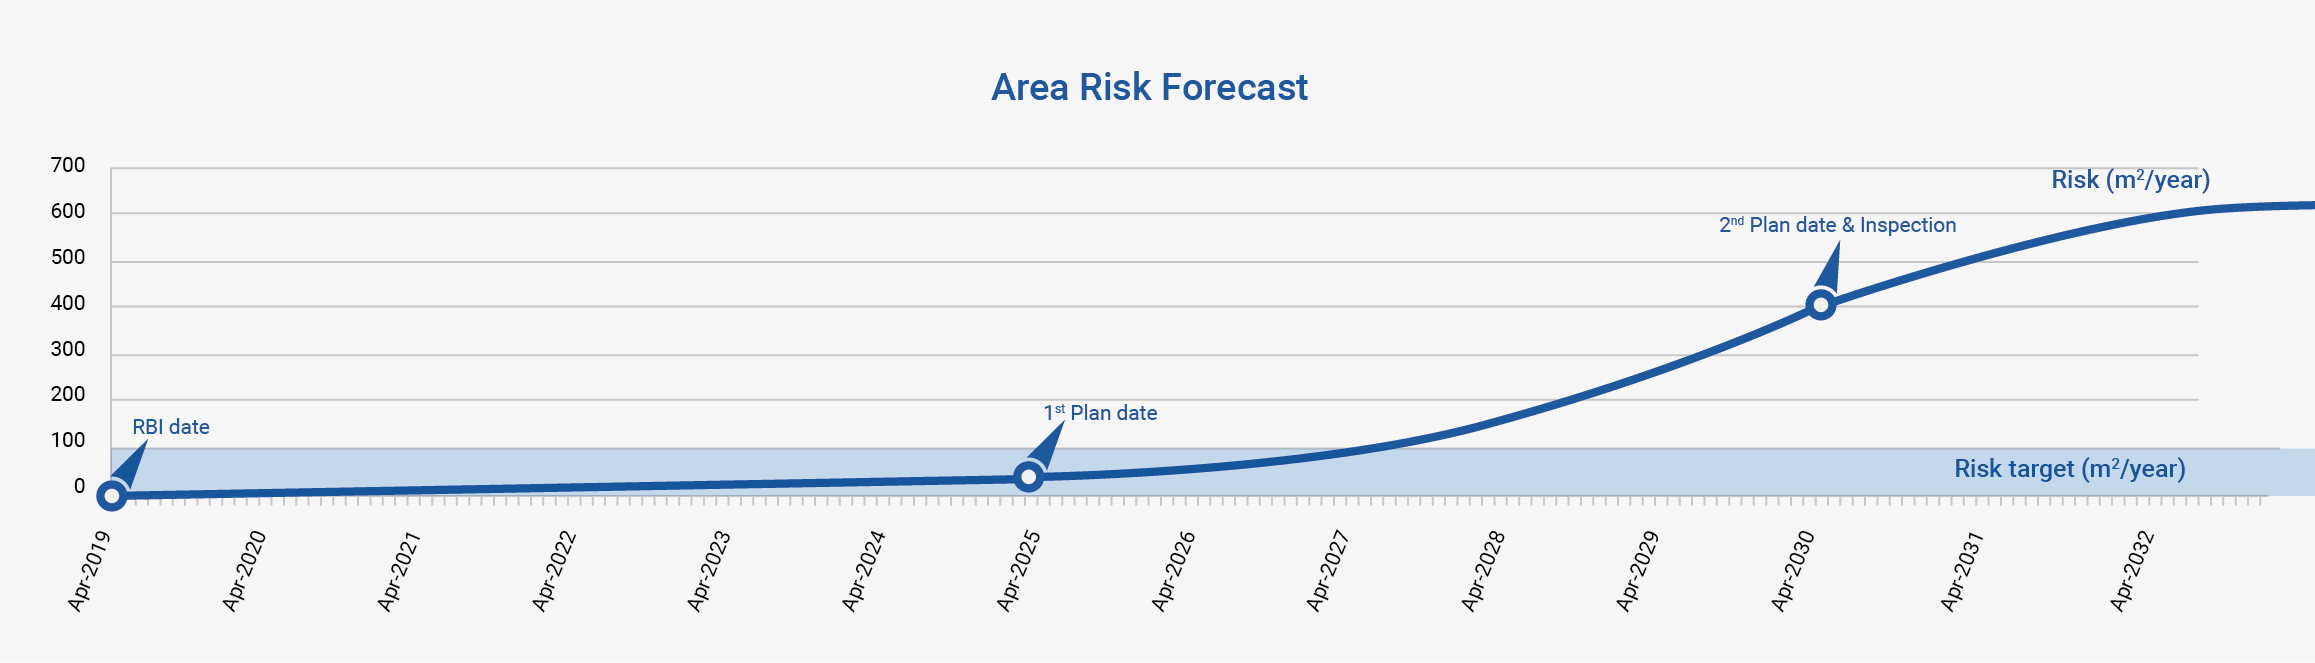 Area Financial Risk Forecast Graph